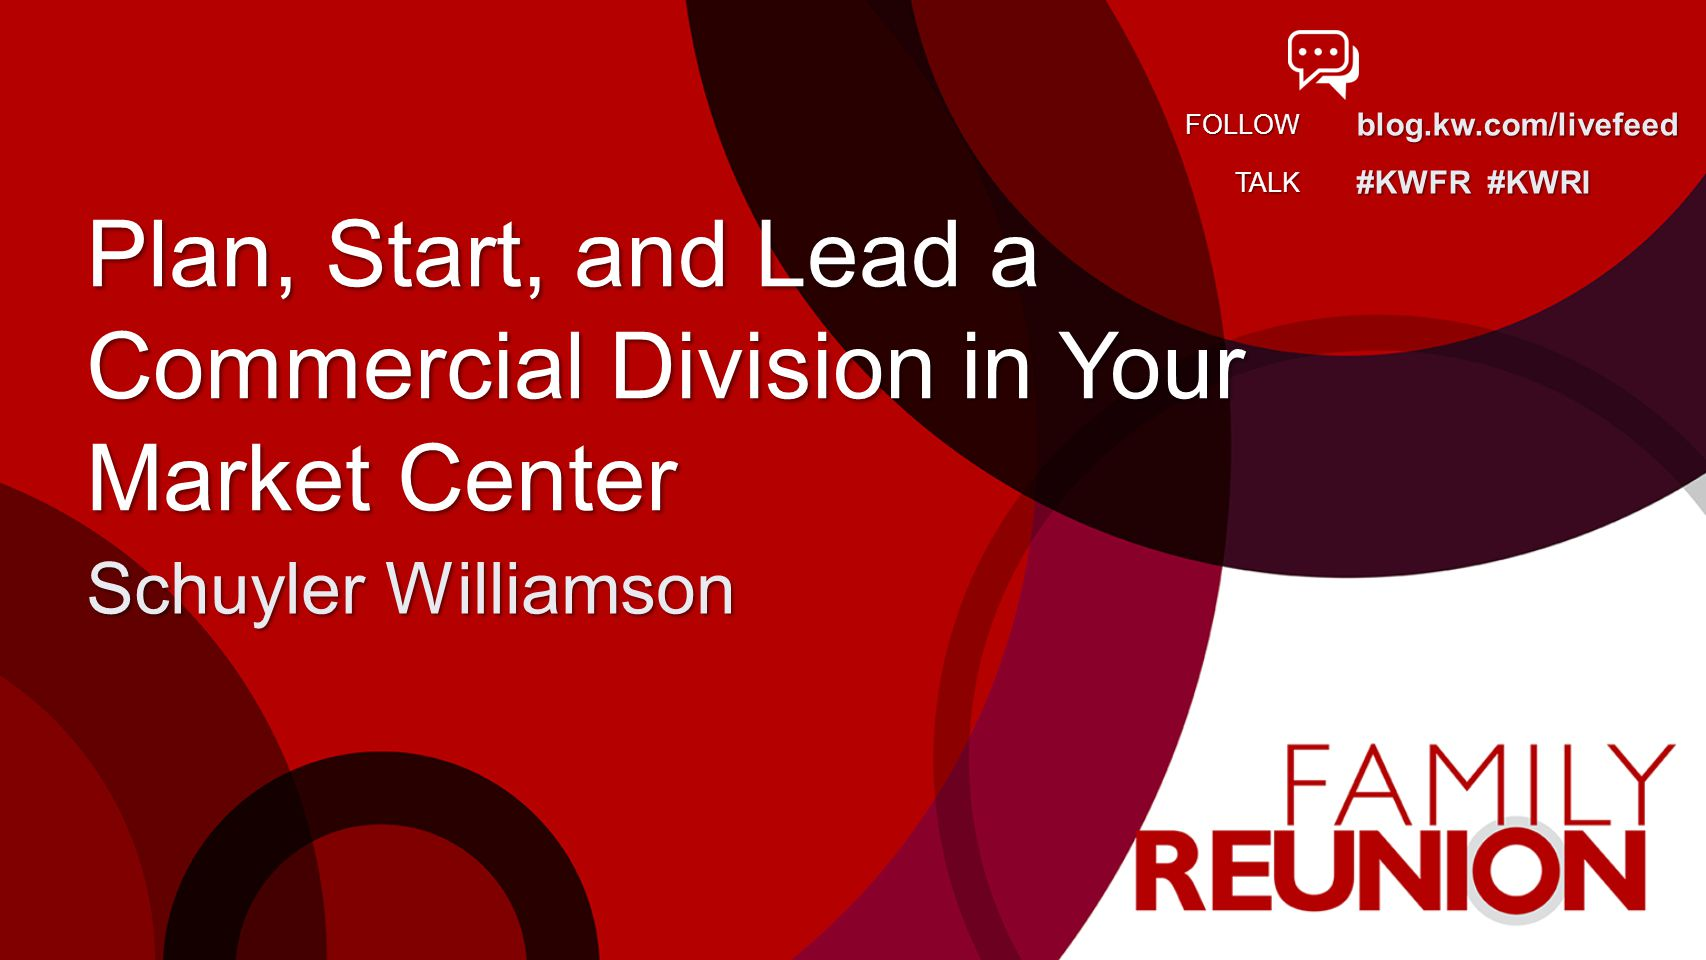 blog.kw.com/livefeed #KWFR #KWRI FOLLOW TALK Plan, Start, and Lead a Commercial Division in Your Market Center Schuyler Williamson